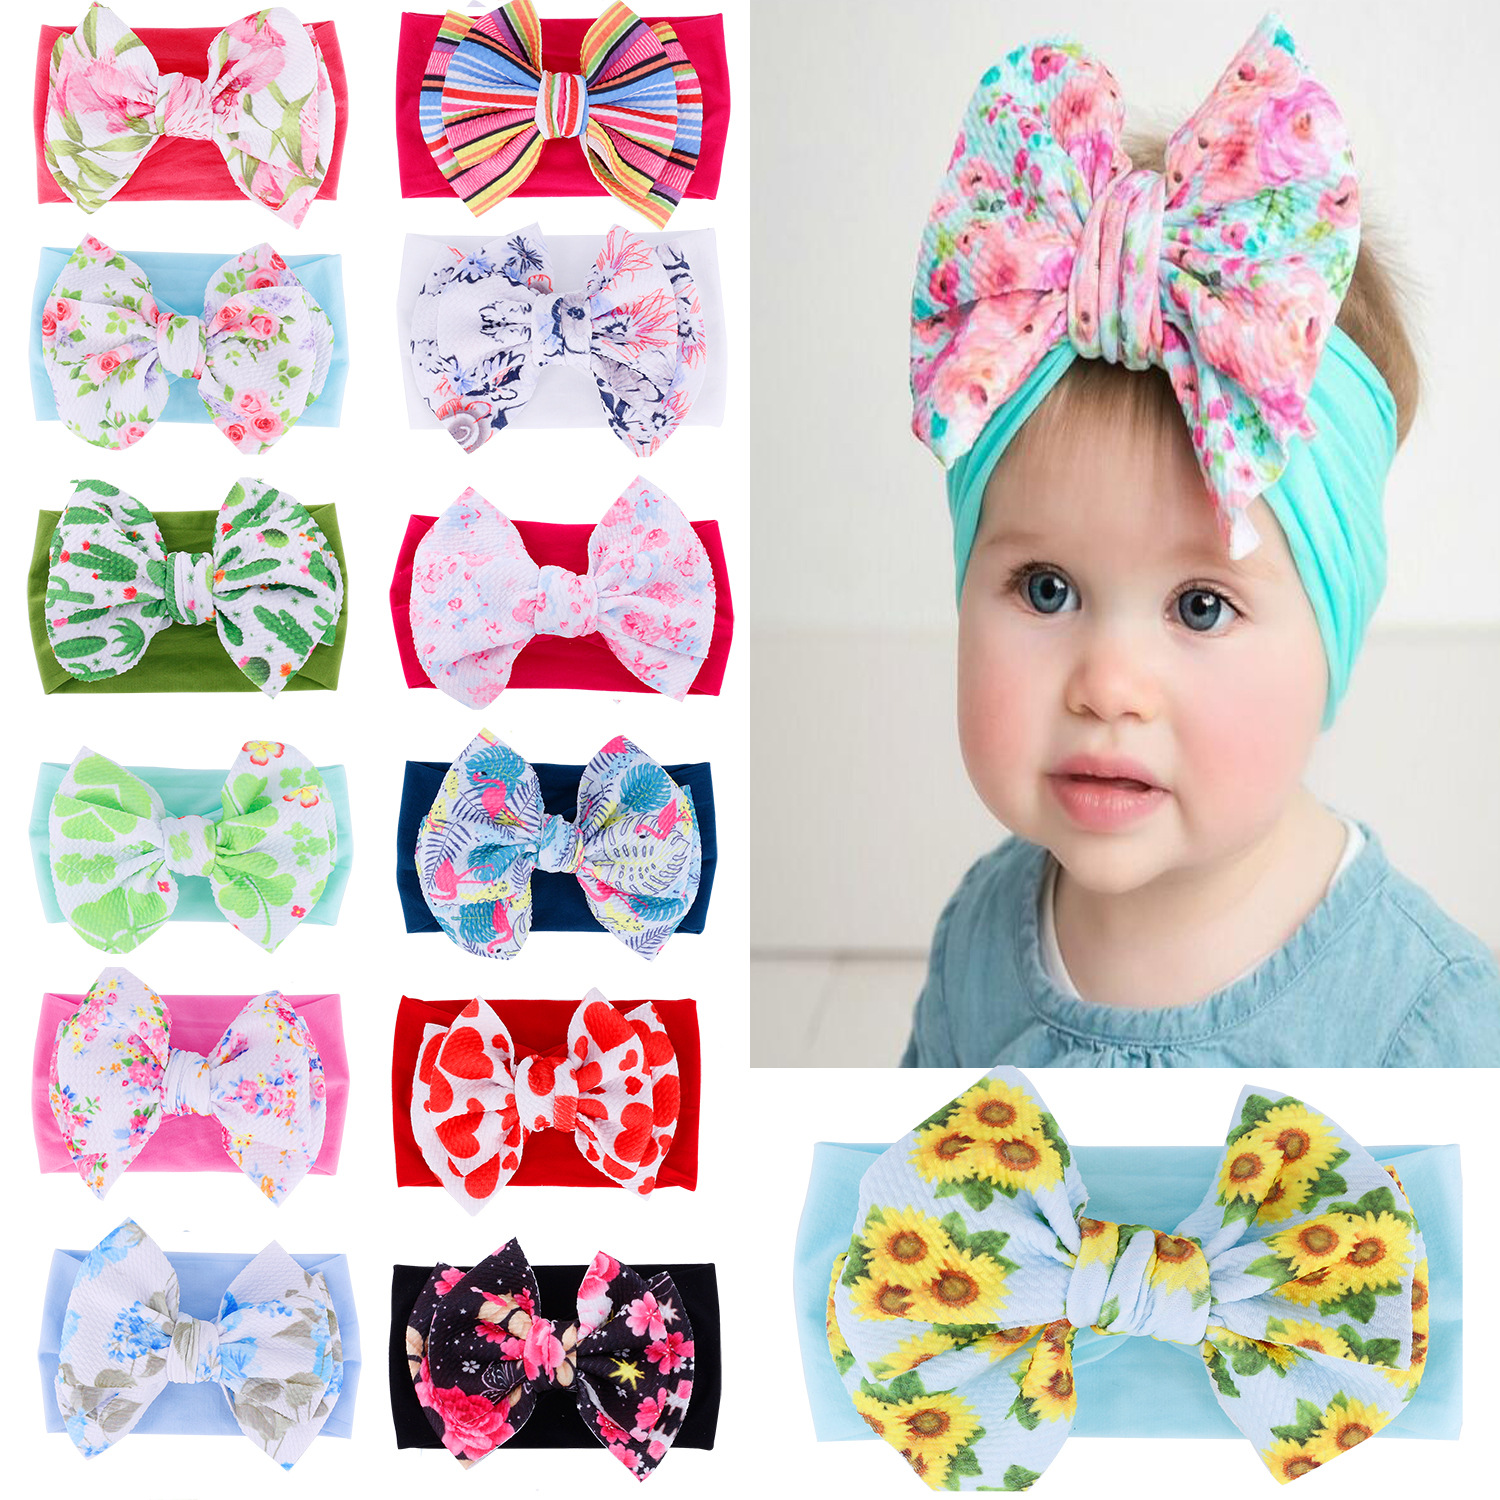 Infant Newborn Baby Headband Big Bowknot Printed Top Knotted Soft Headwrap Cute